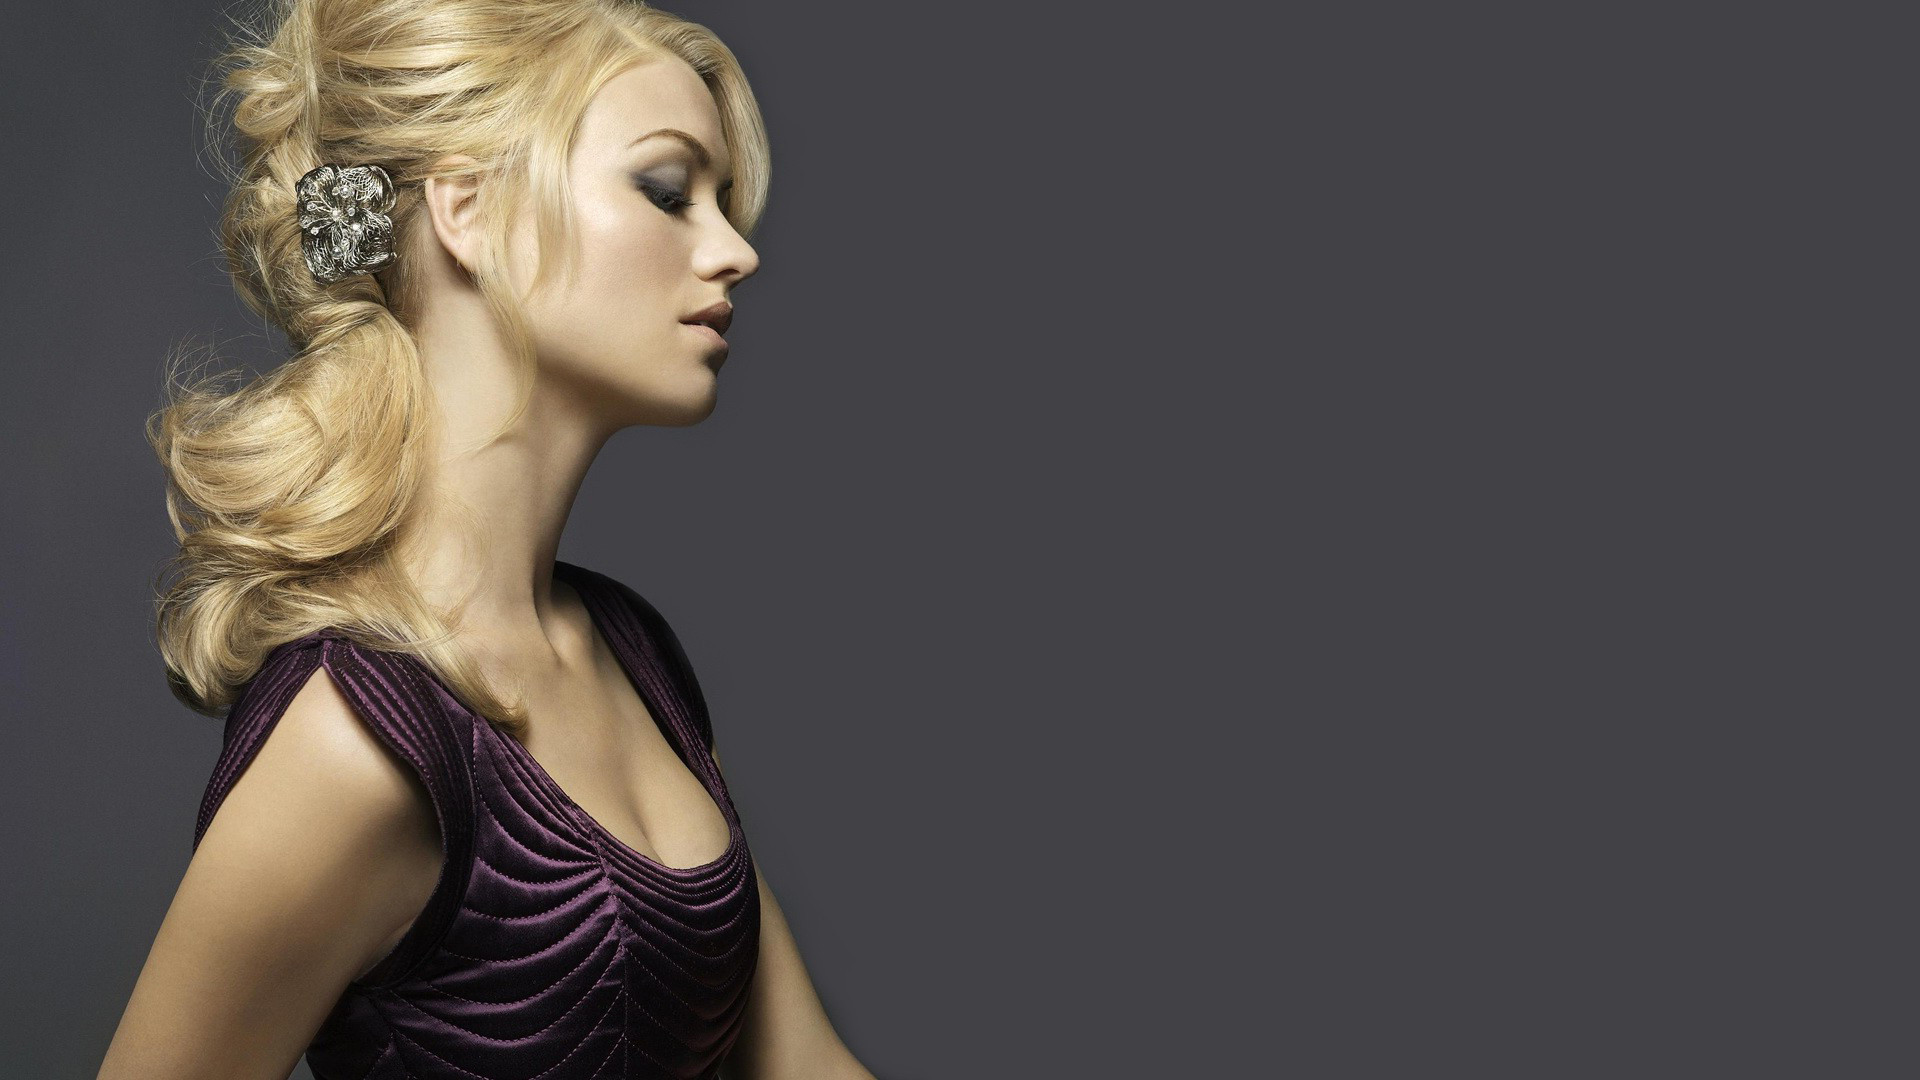 Yvonne Strahovski Full HD Wallpaper and Background Image ...